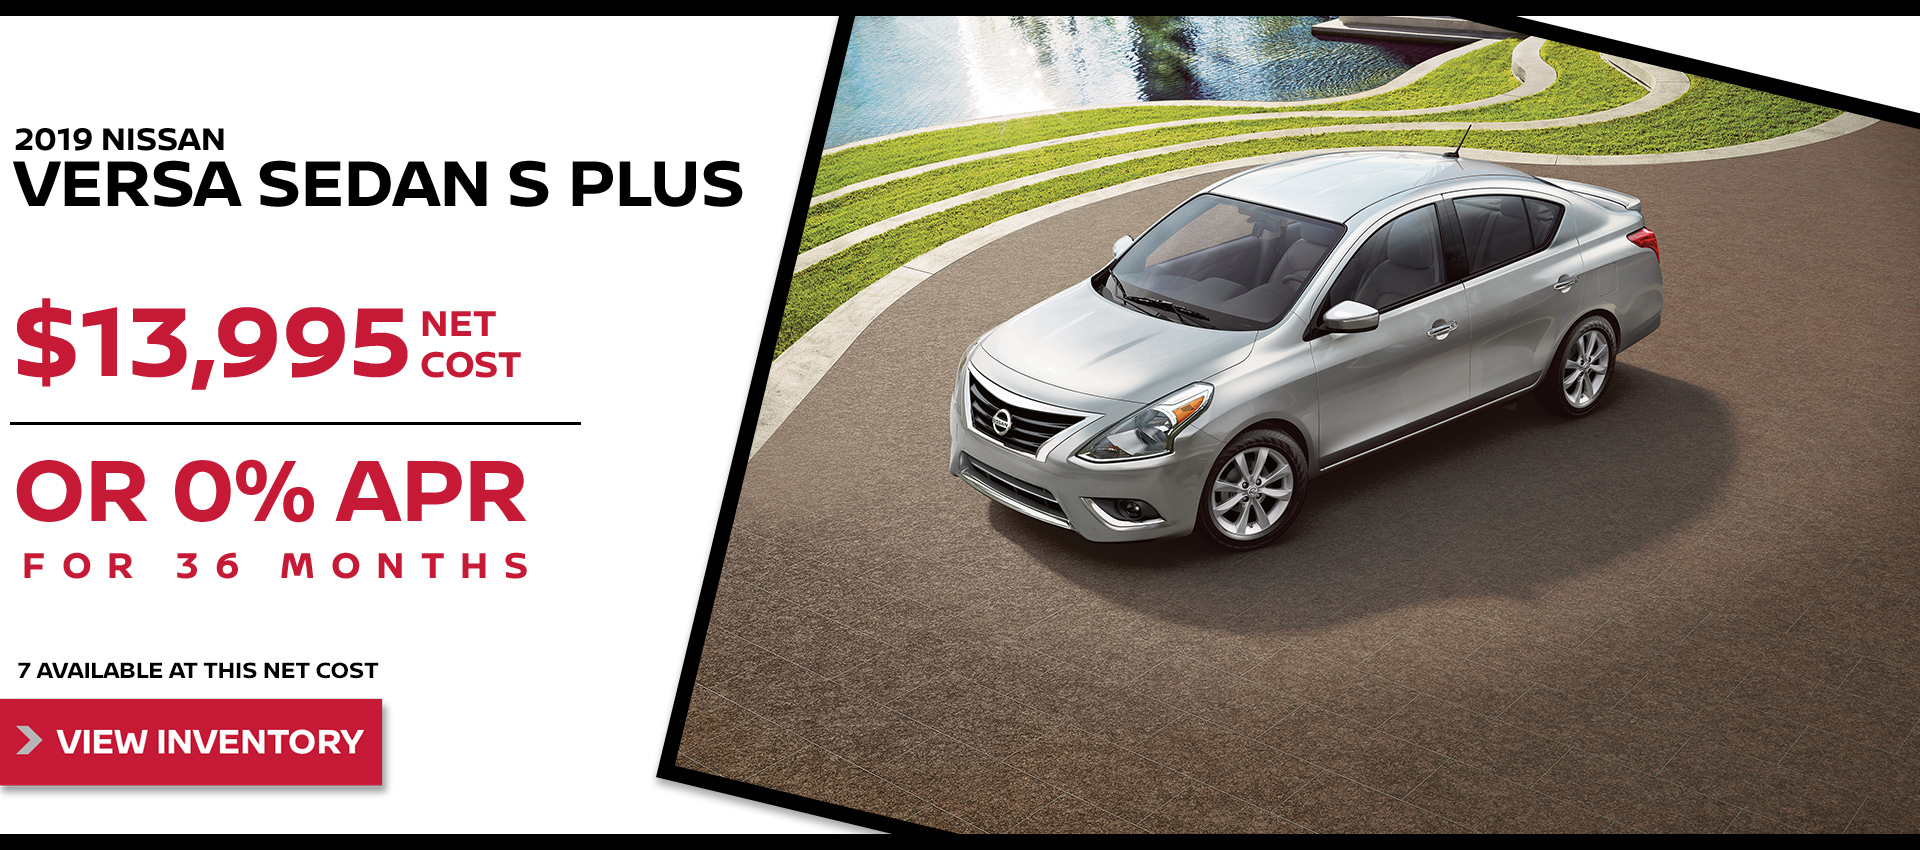 Mossy Nissan - Nissan Versa $13,995 Purchase HP